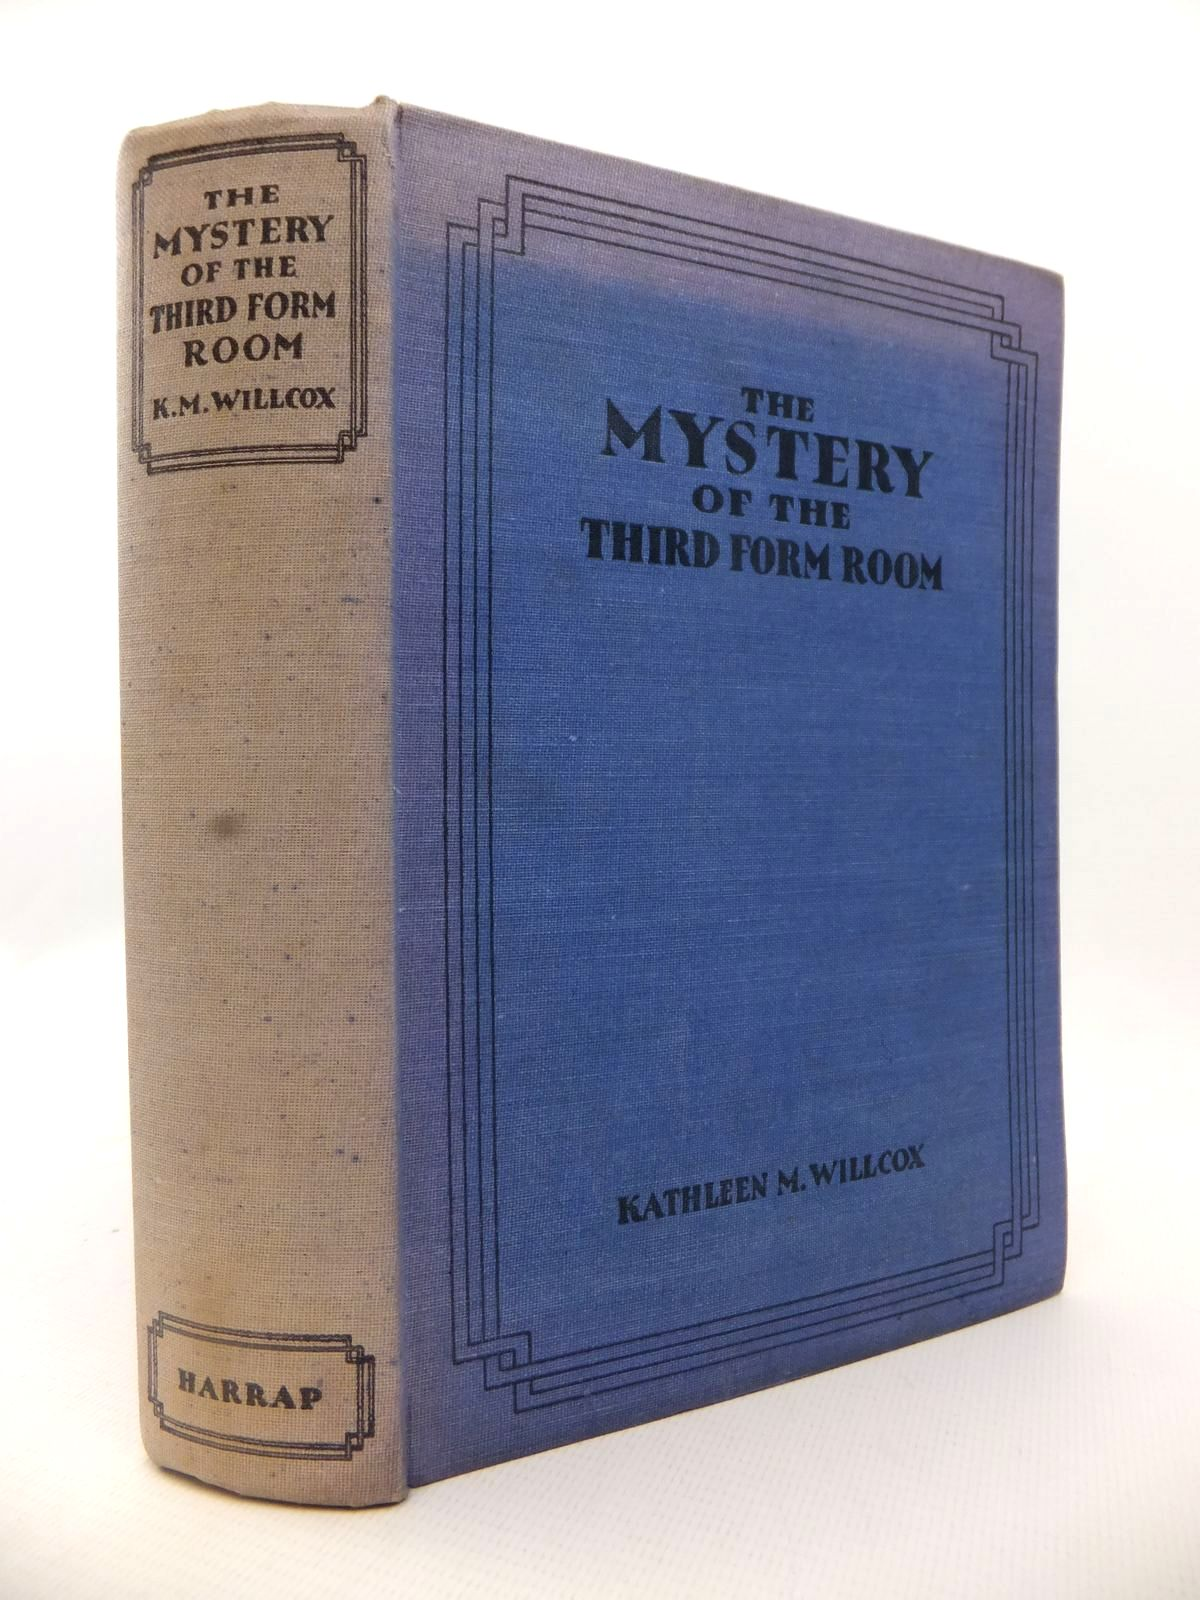 Photo of THE MYSTERY OF THE THIRD FORM ROOM written by Willcox, Kathleen M. illustrated by Graves, Percy published by George G. Harrap & Co. Ltd. (STOCK CODE: 1812823)  for sale by Stella & Rose's Books